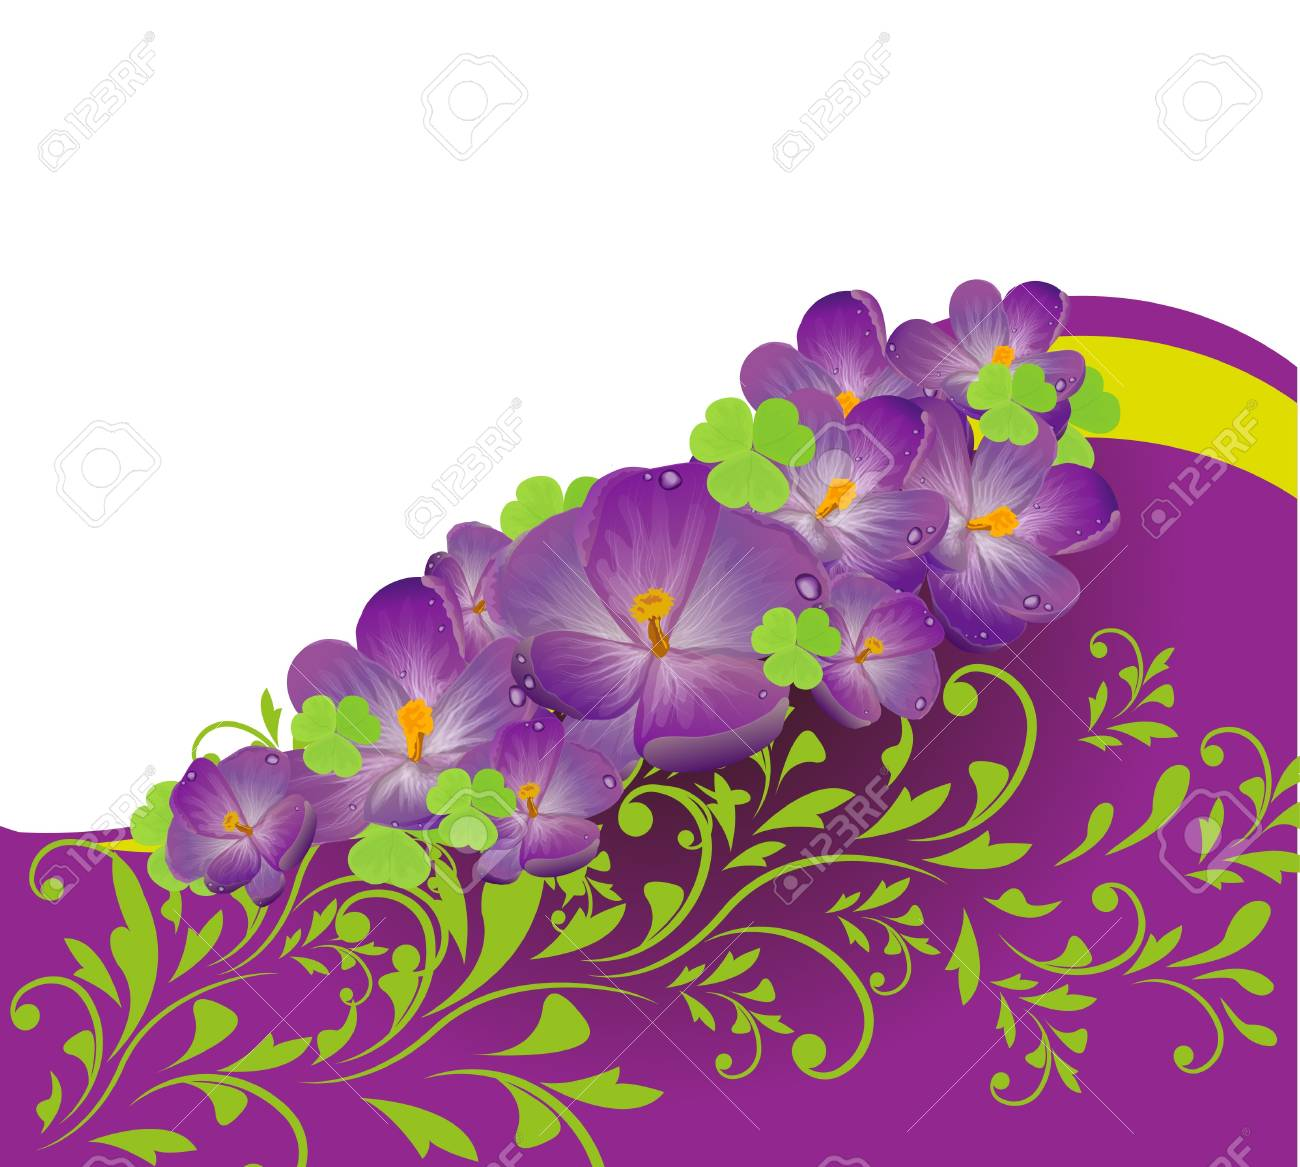 Invitation or wedding card with abstract floral background. Stock Vector - 18442578